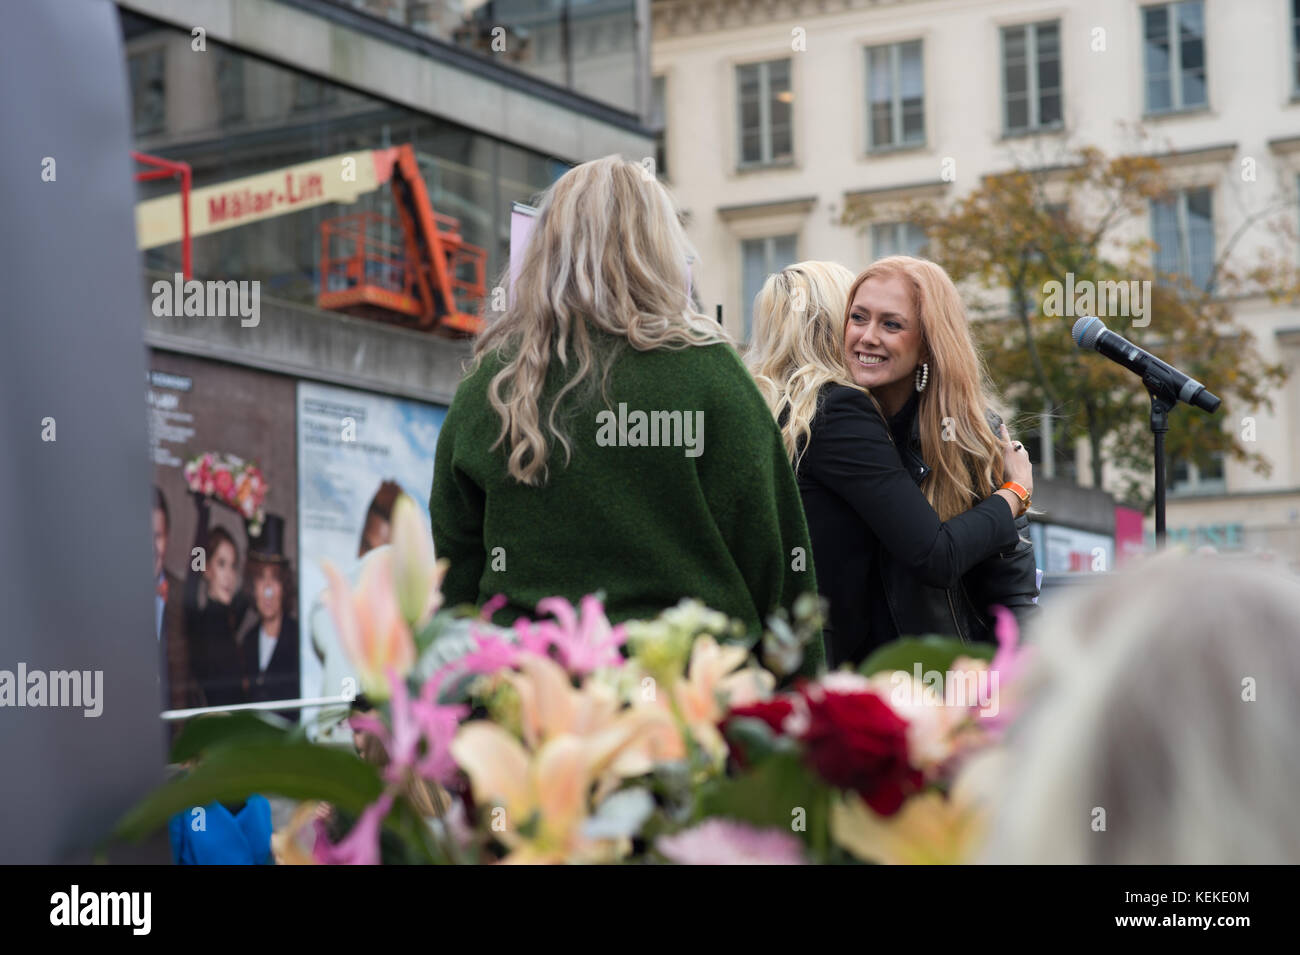 Stockholm, Sweden, 22nd October, 2017. This week, millions of women worldwide shared their experiences of sexual - Stock Image